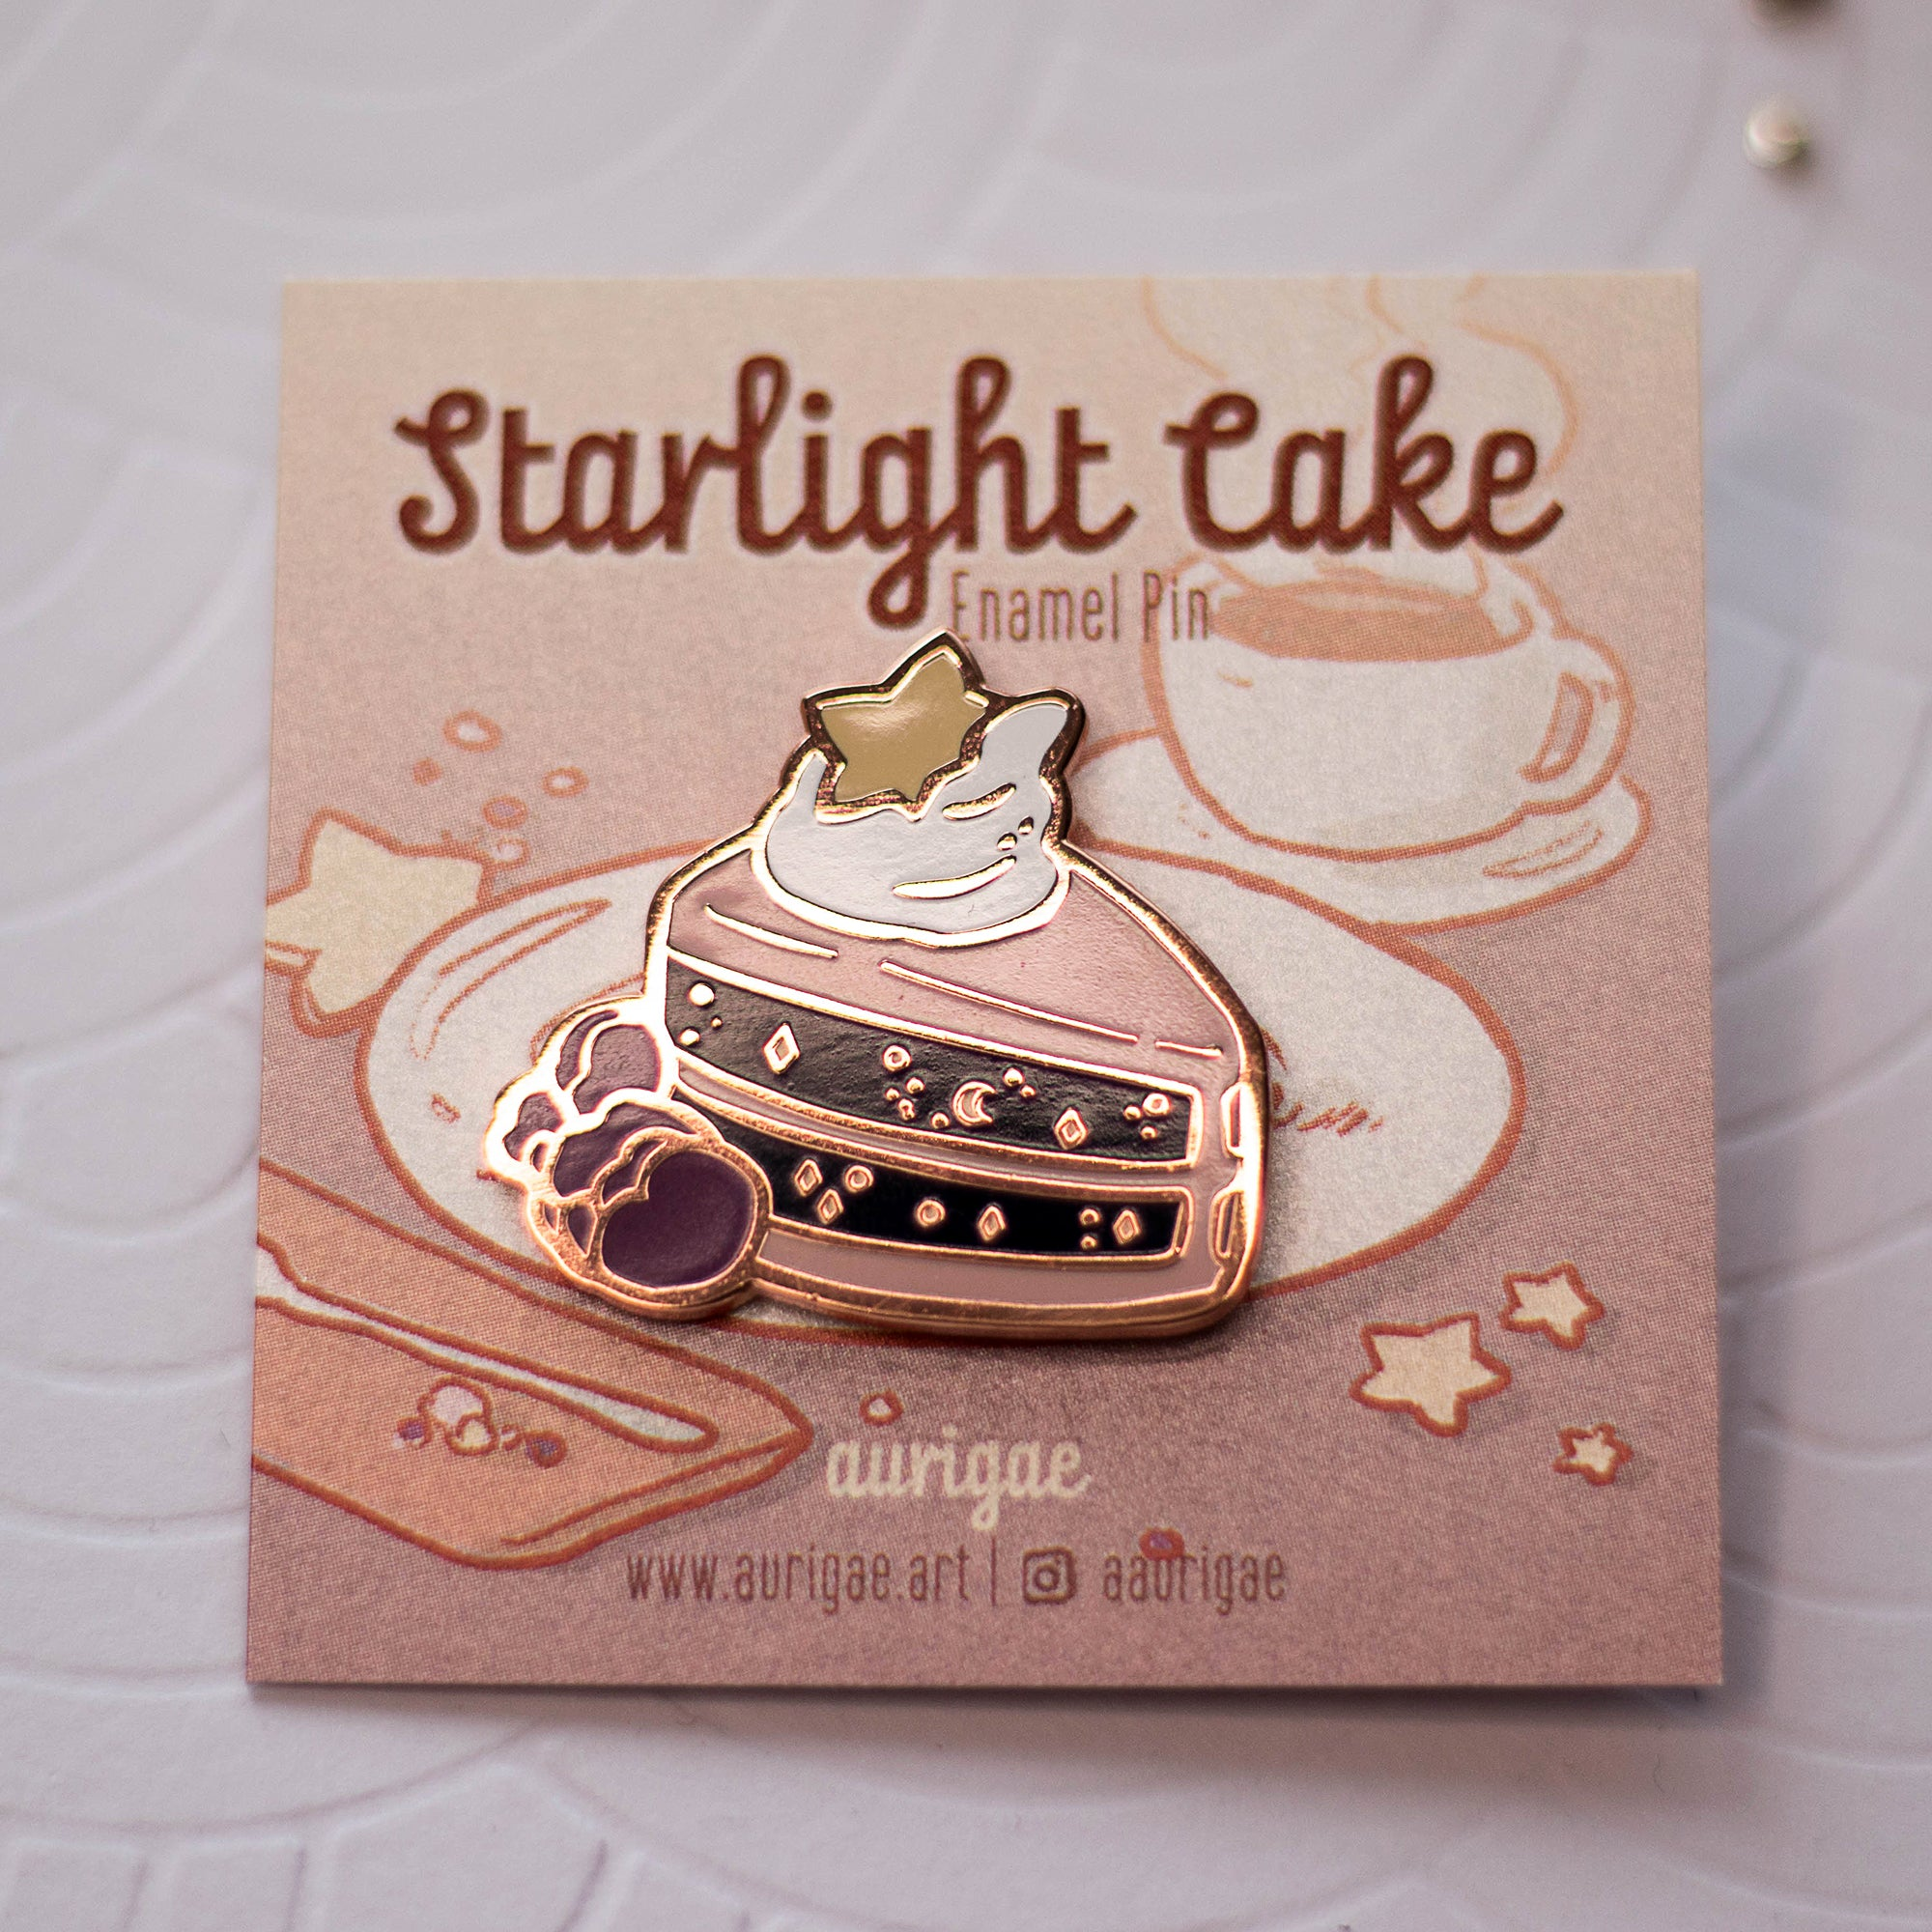 Starlight Cake | Enamel Pin - Aurigae Art &Illustration